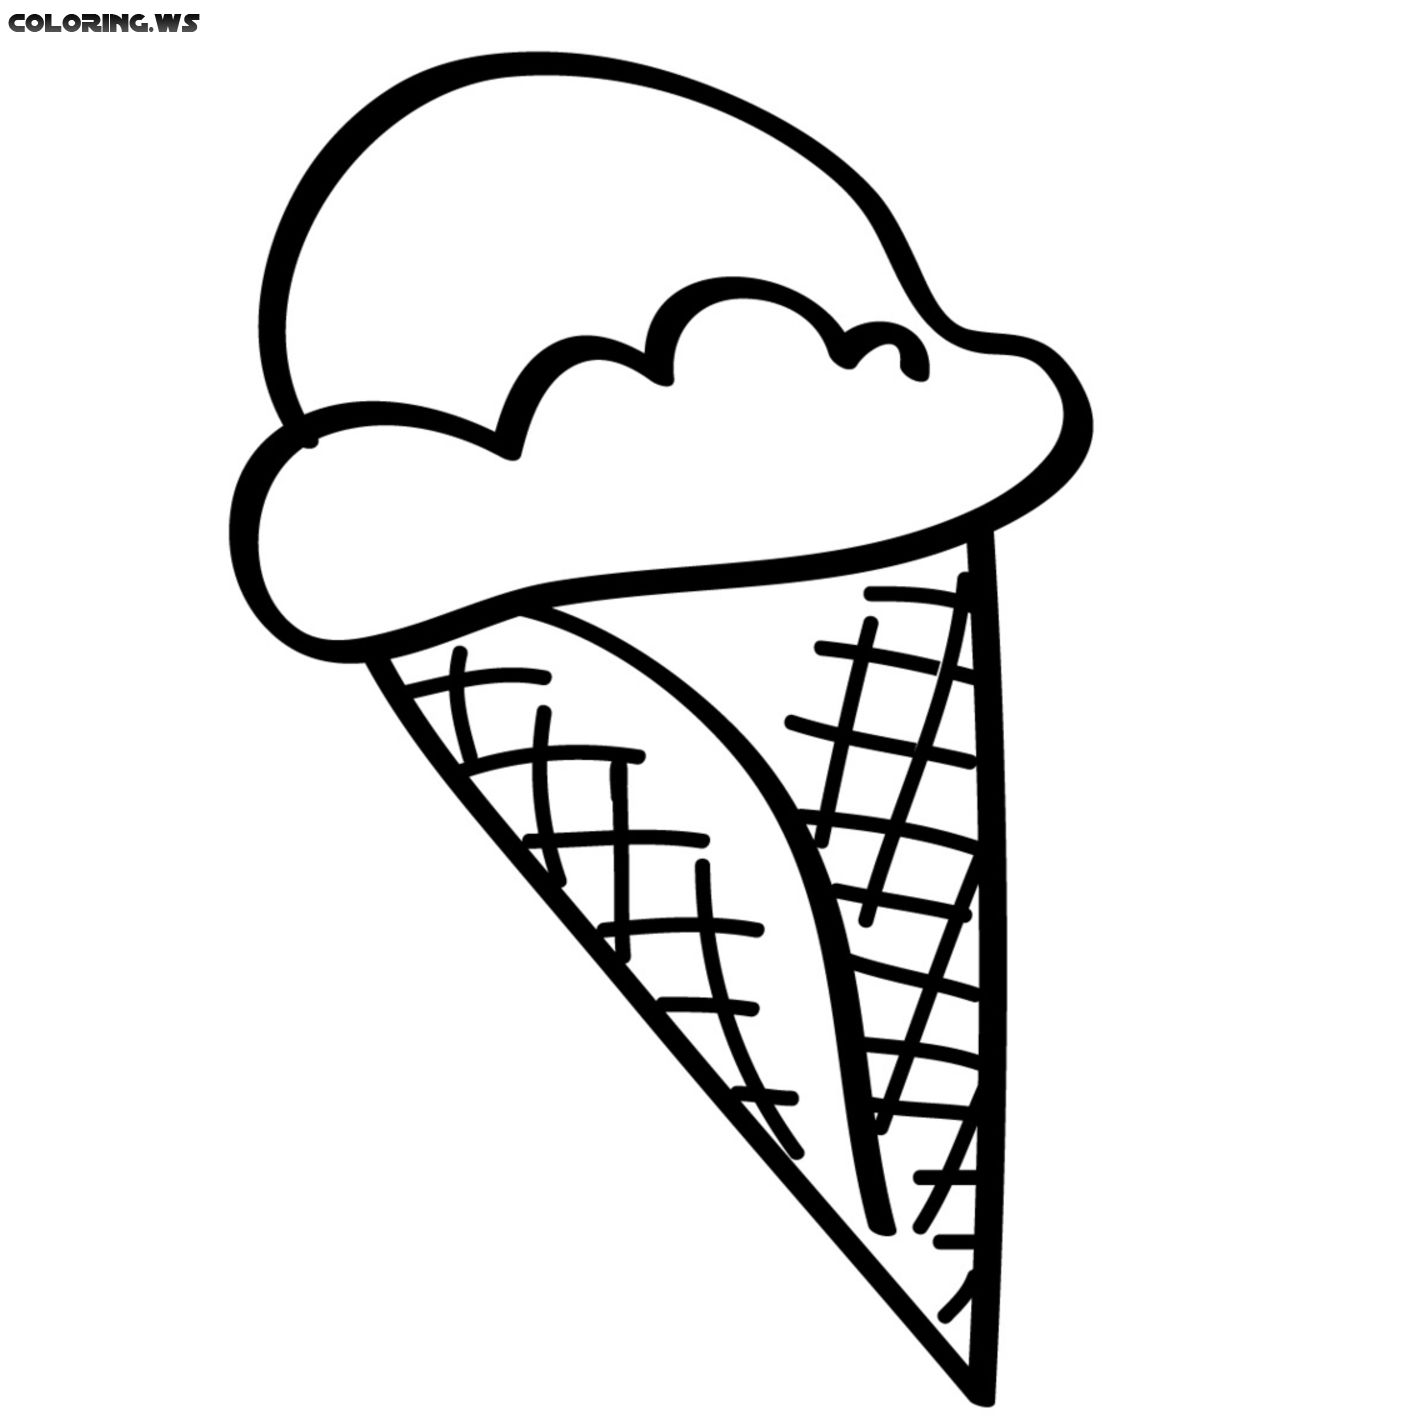 Ice Cream Cone Coloring Page Color Coloring Coloringpages